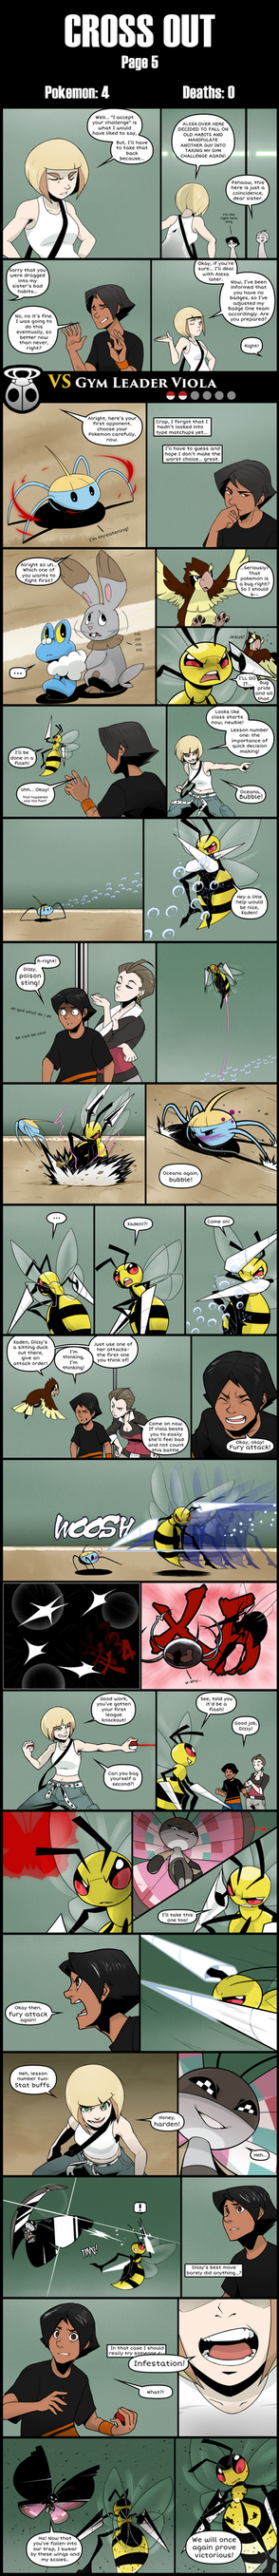 Cross Out [Pokemon X blind nuzlocke] page 5 by Protocol00